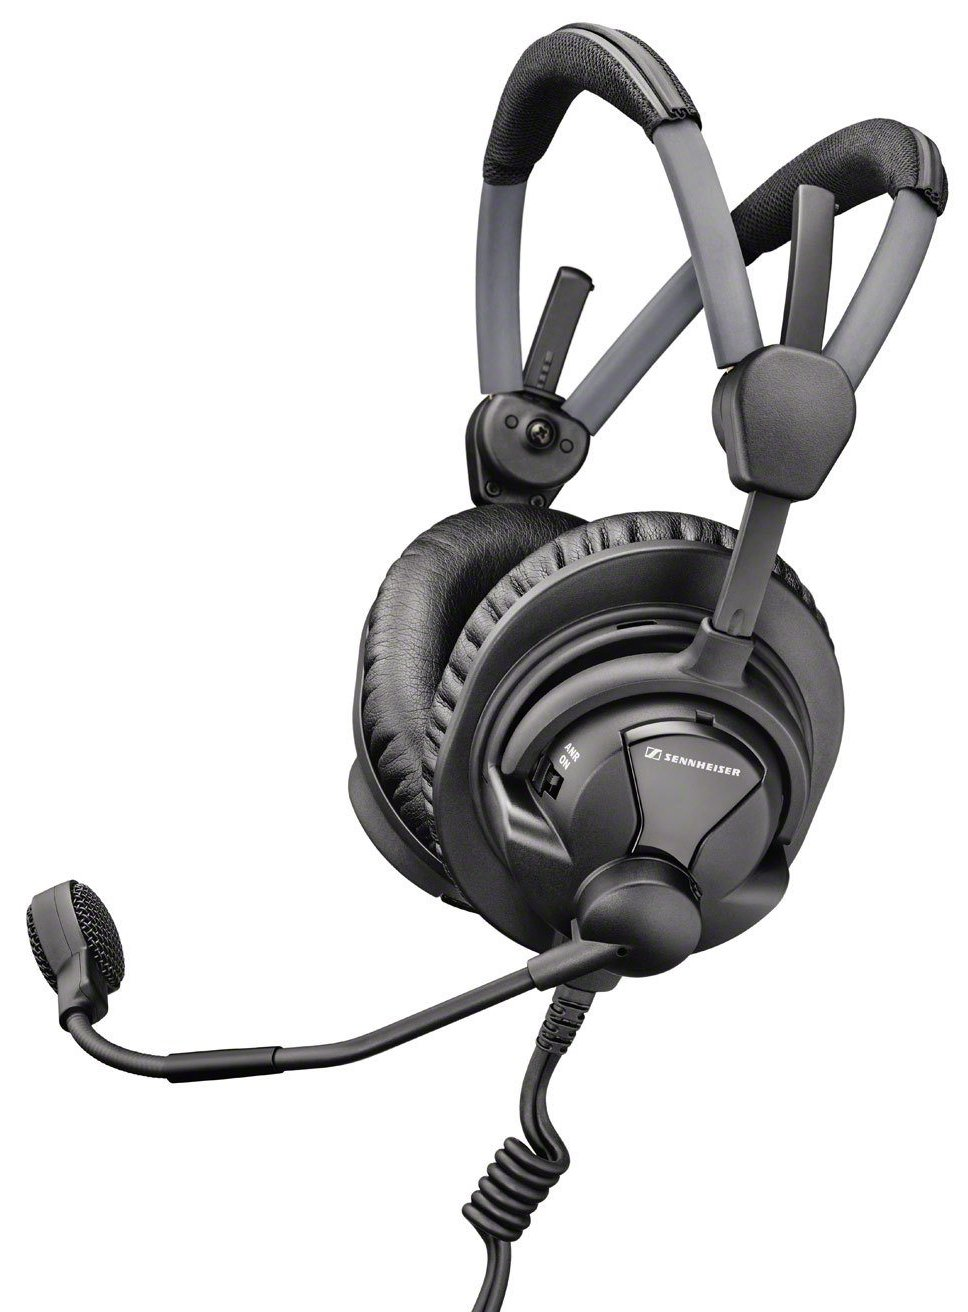 Broadcast Headset with Noisegard